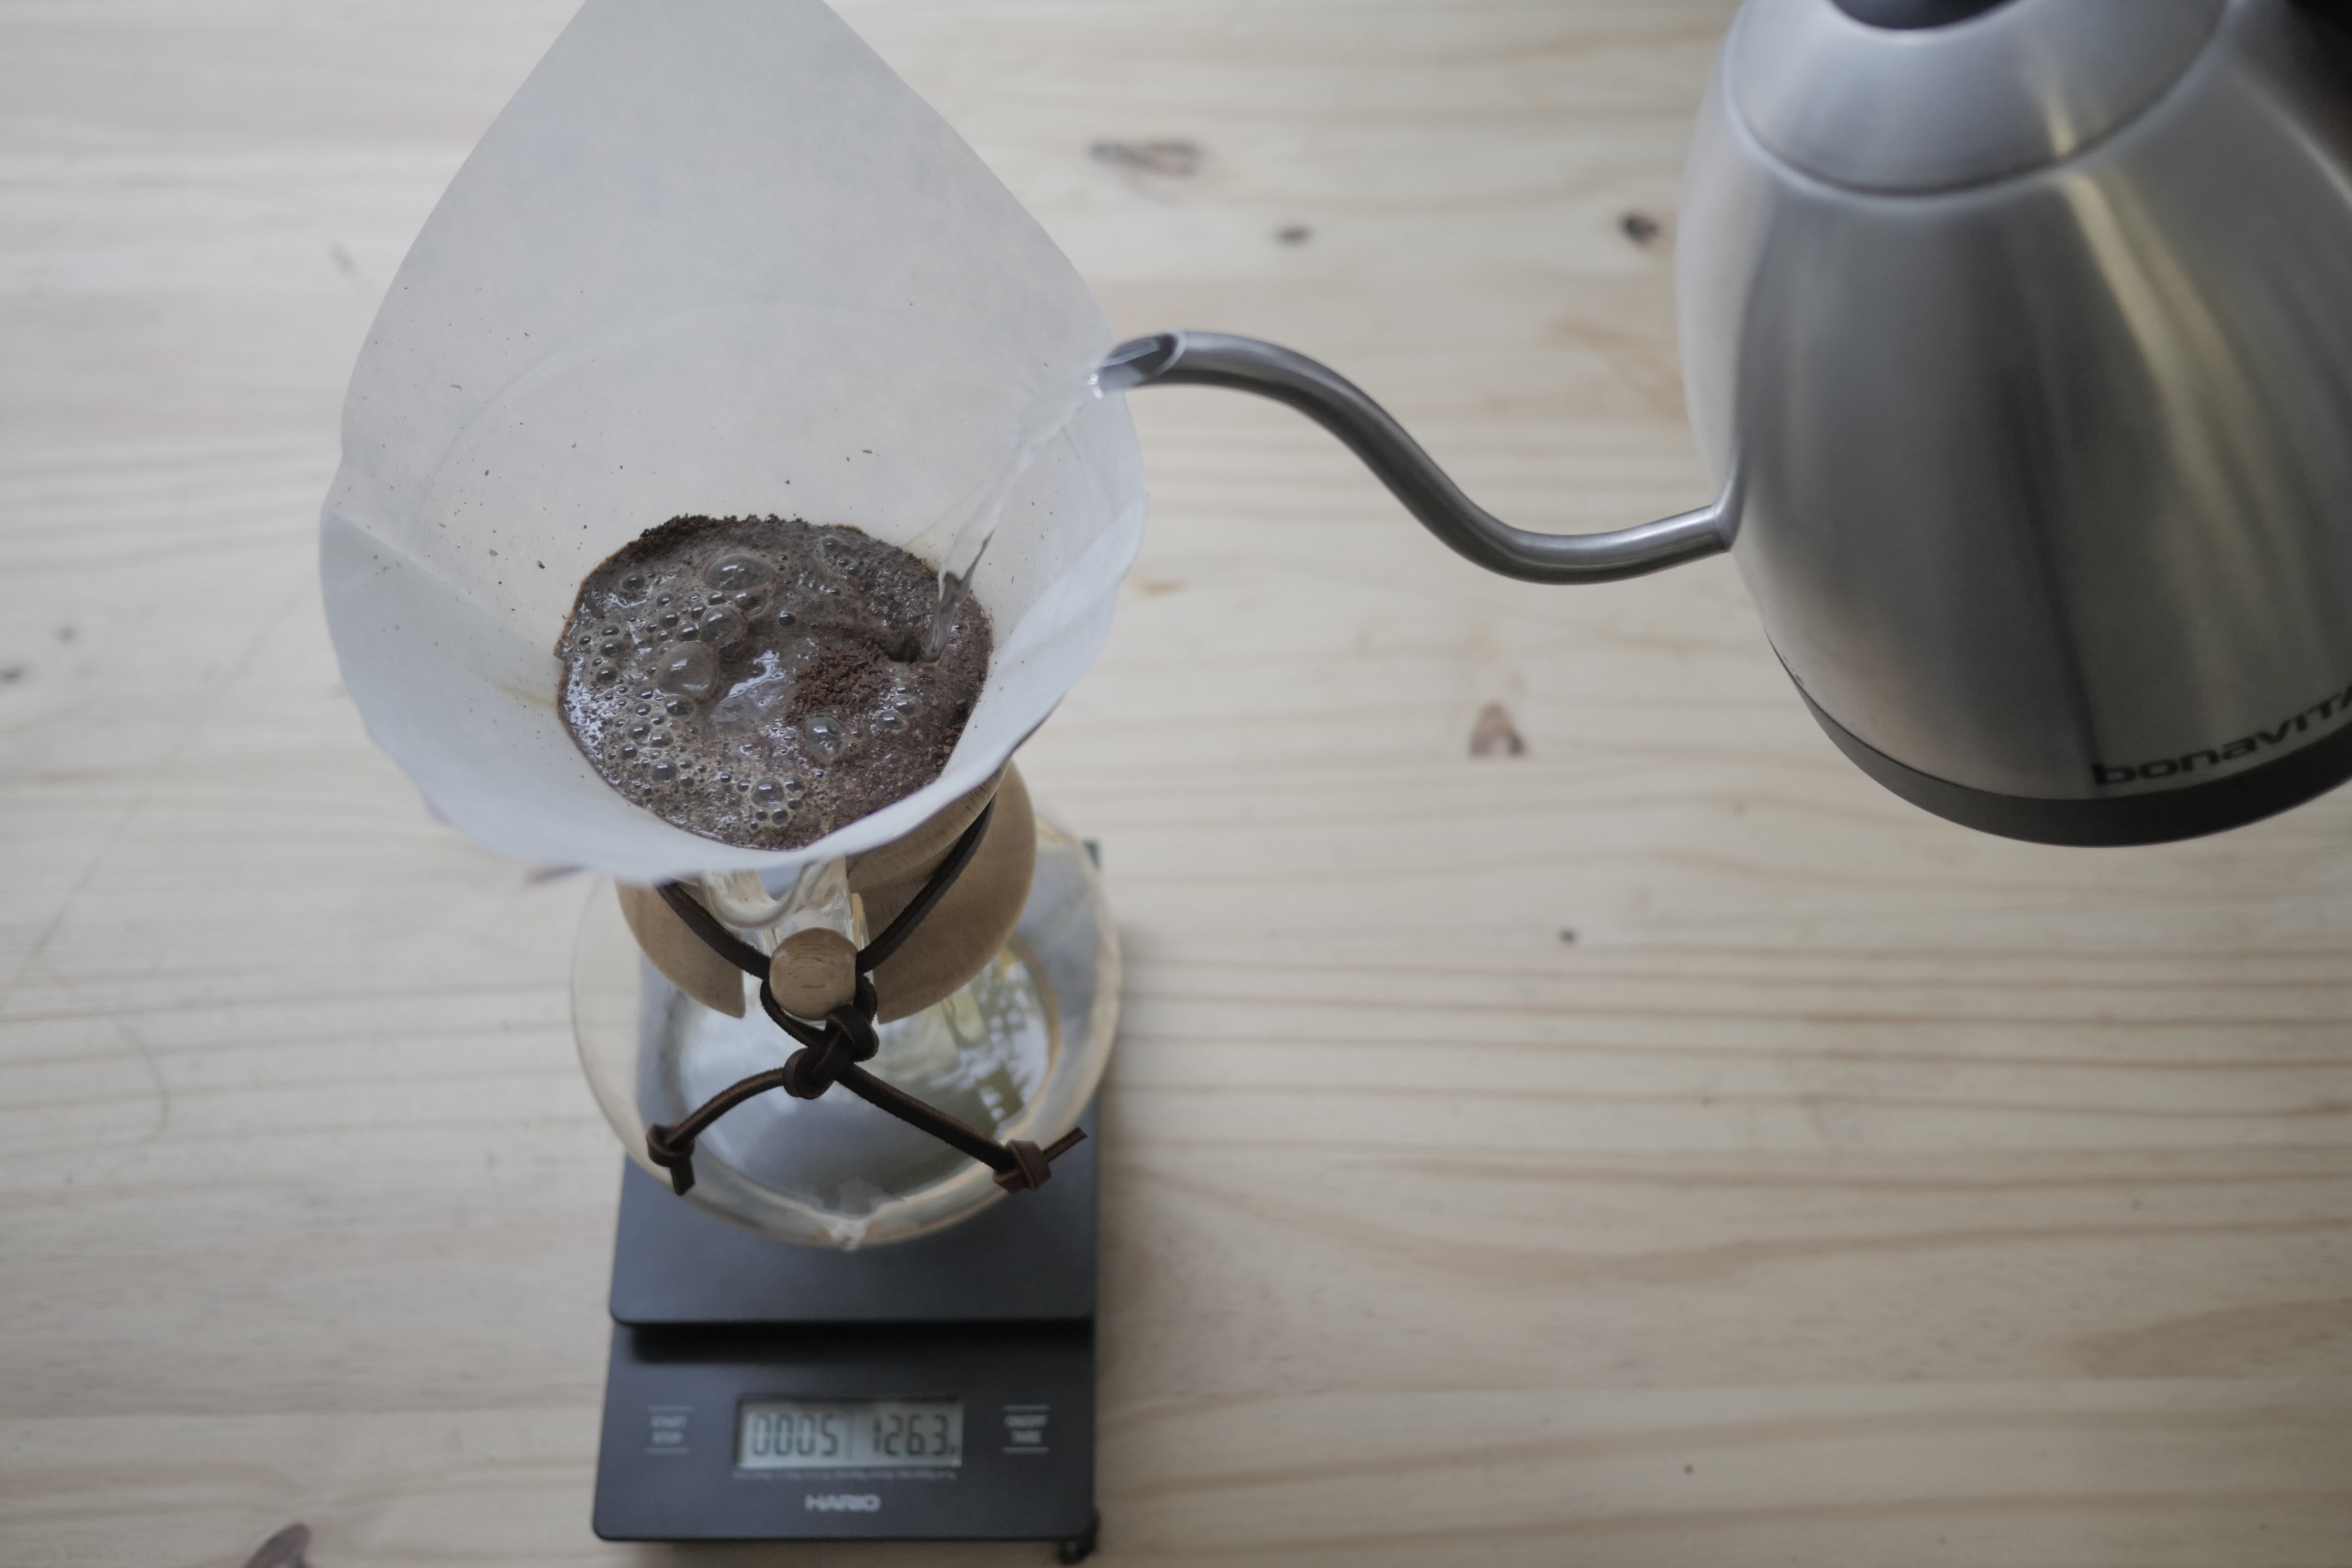 https://www.dose.paris/img/cms/RECETTE-CHEMEX-BLOOMING-DOSEPARIS.JPG